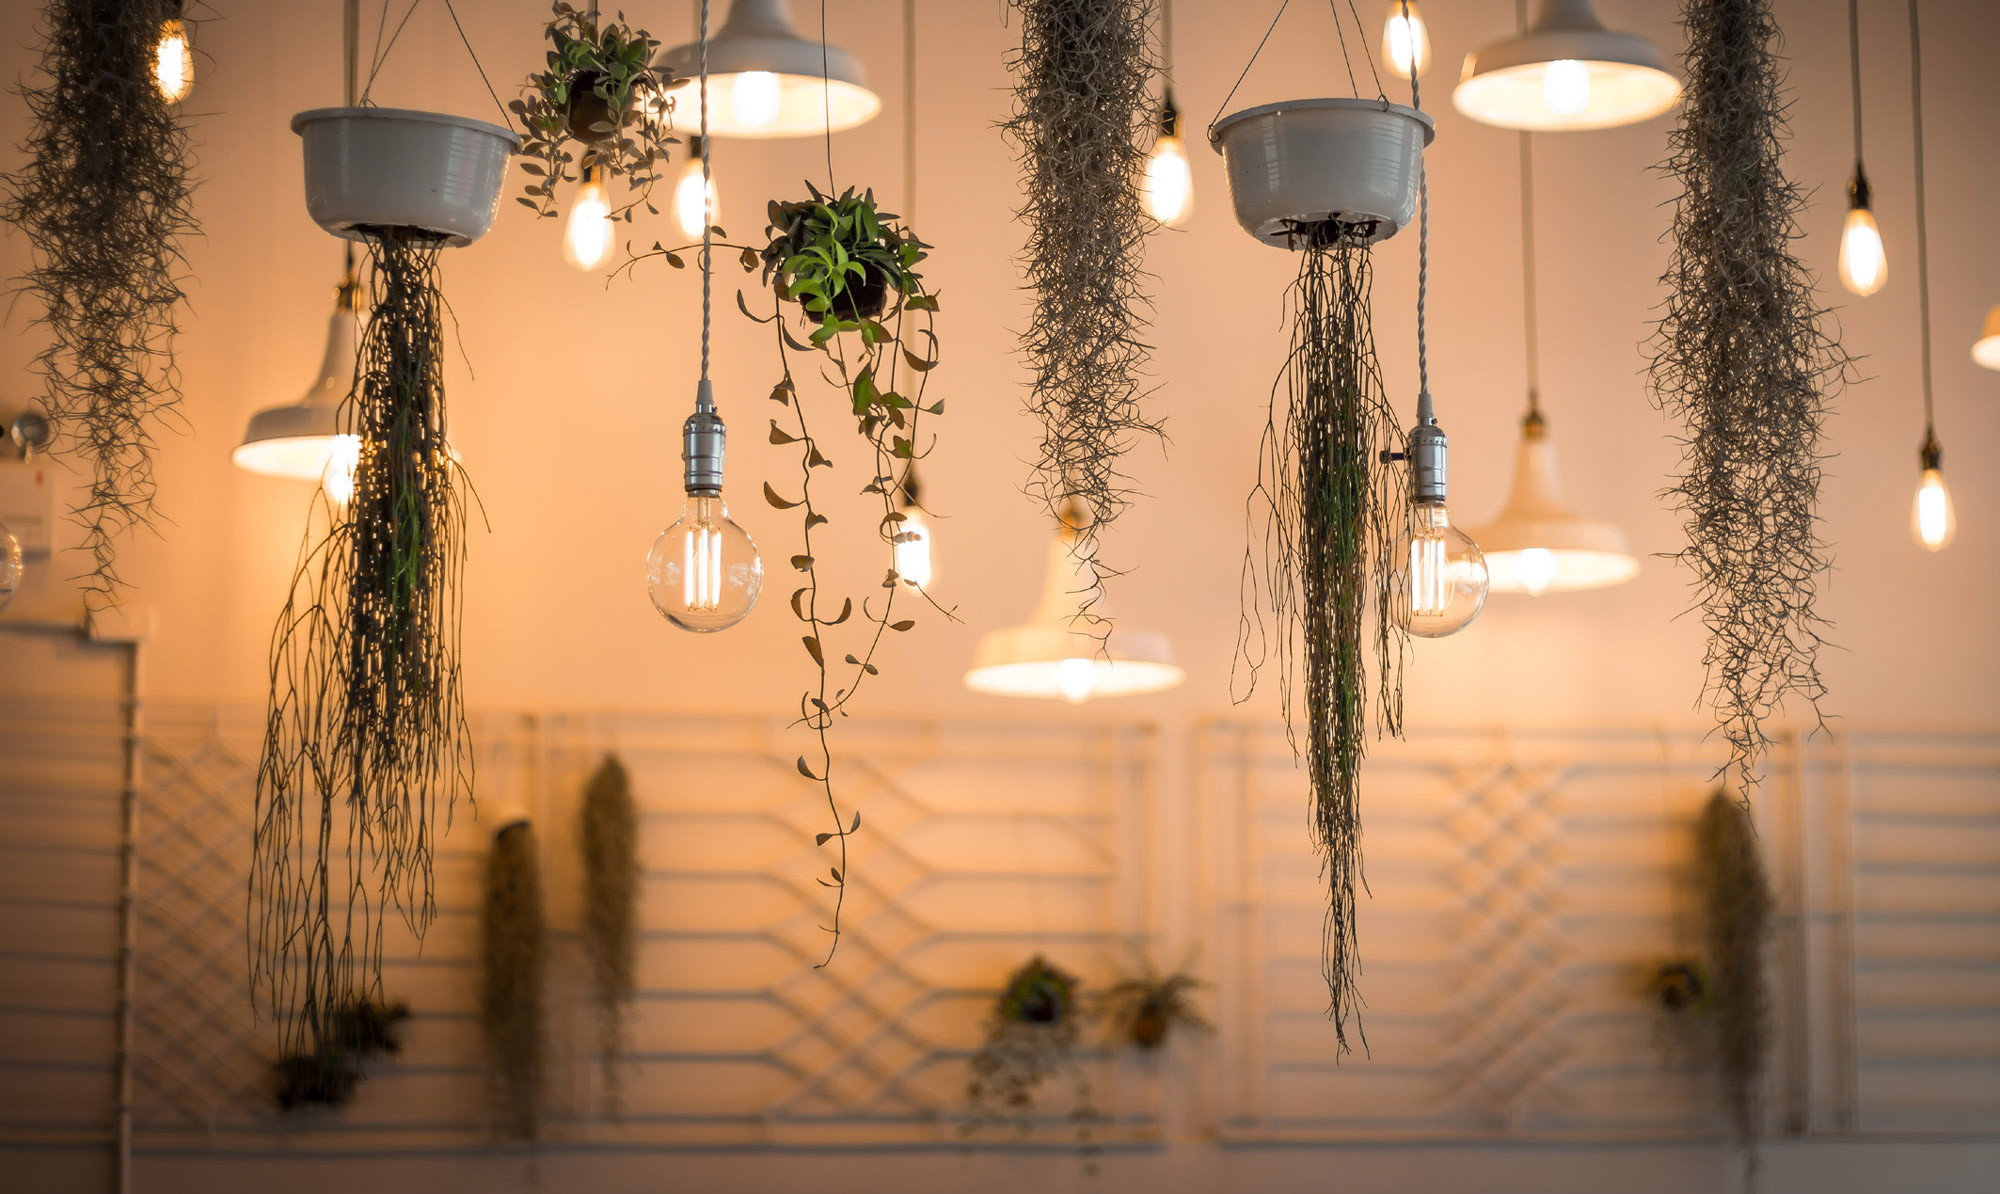 Greener lighting solutions. Eco-friendly retail business. British Independent Retailers Association